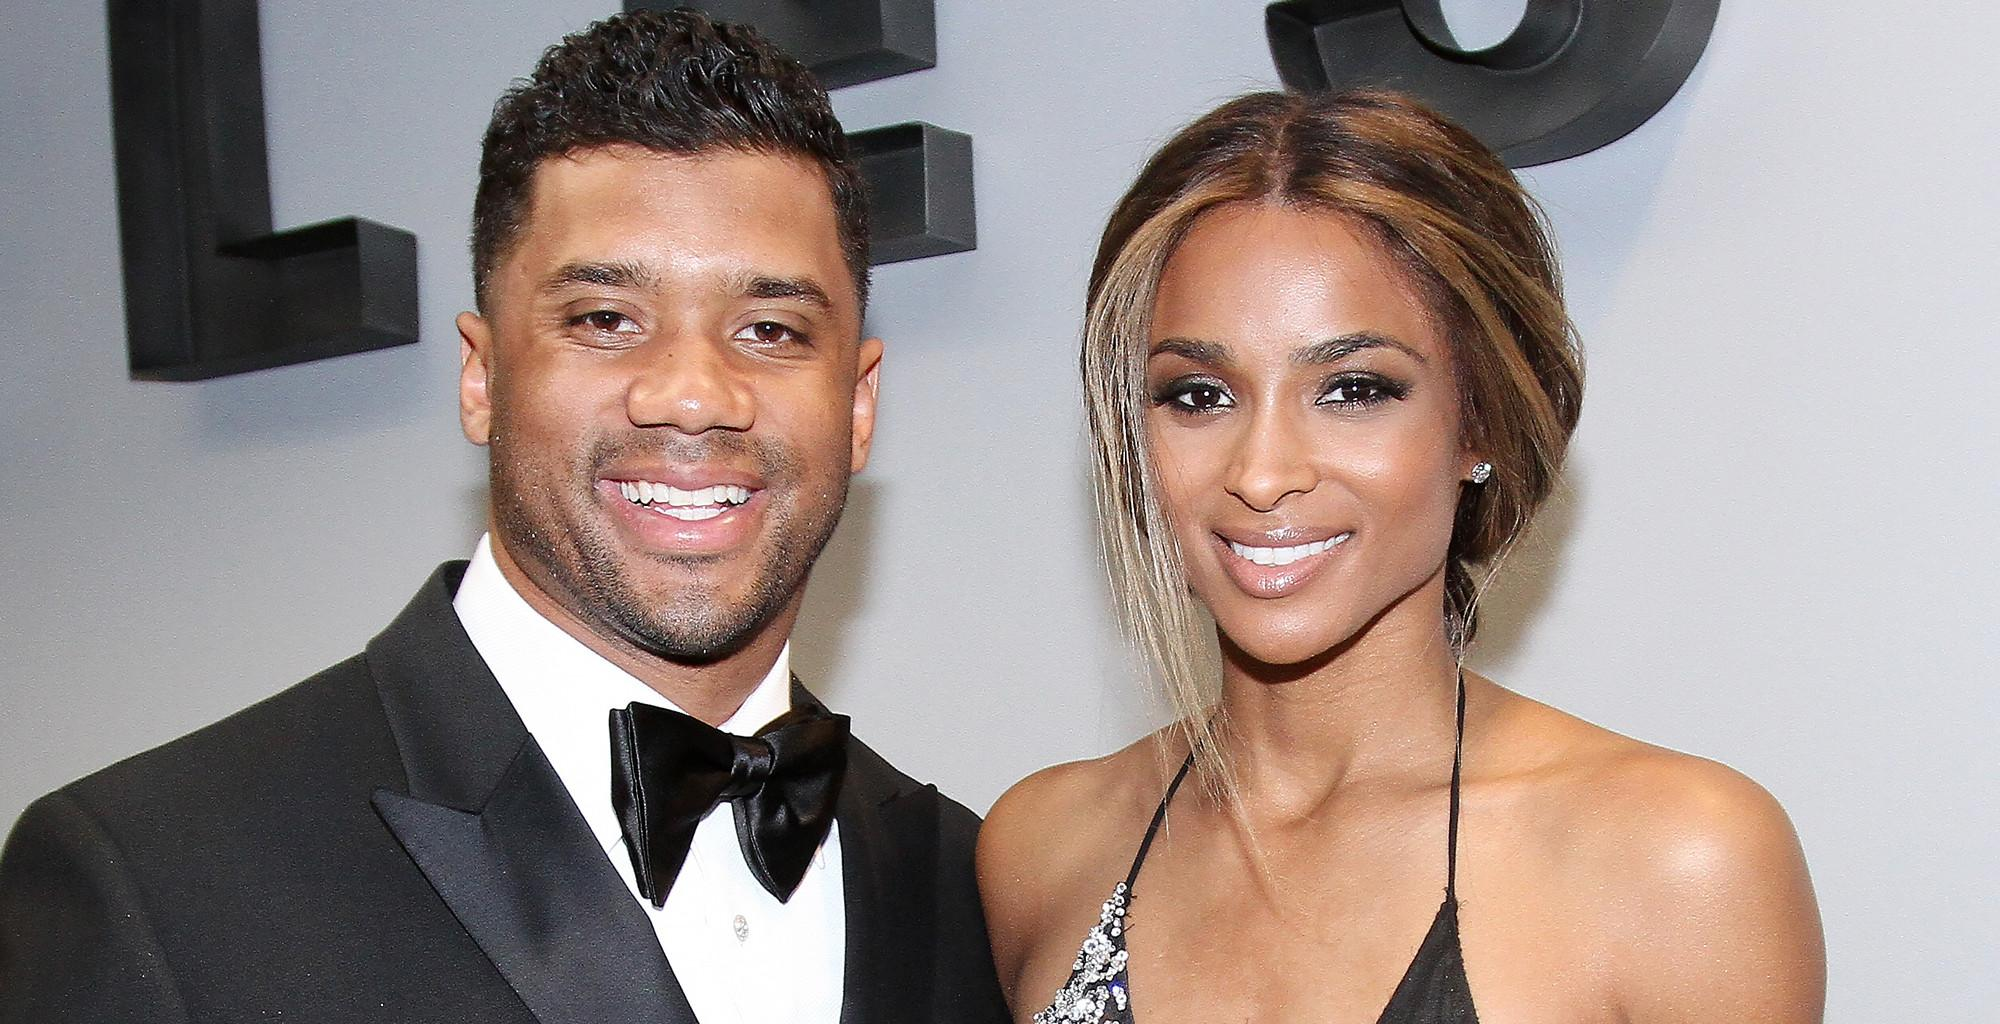 Ciara And Russell Wilson Reportedly Launched A Joint Production Company For Film, TV And Digital Content